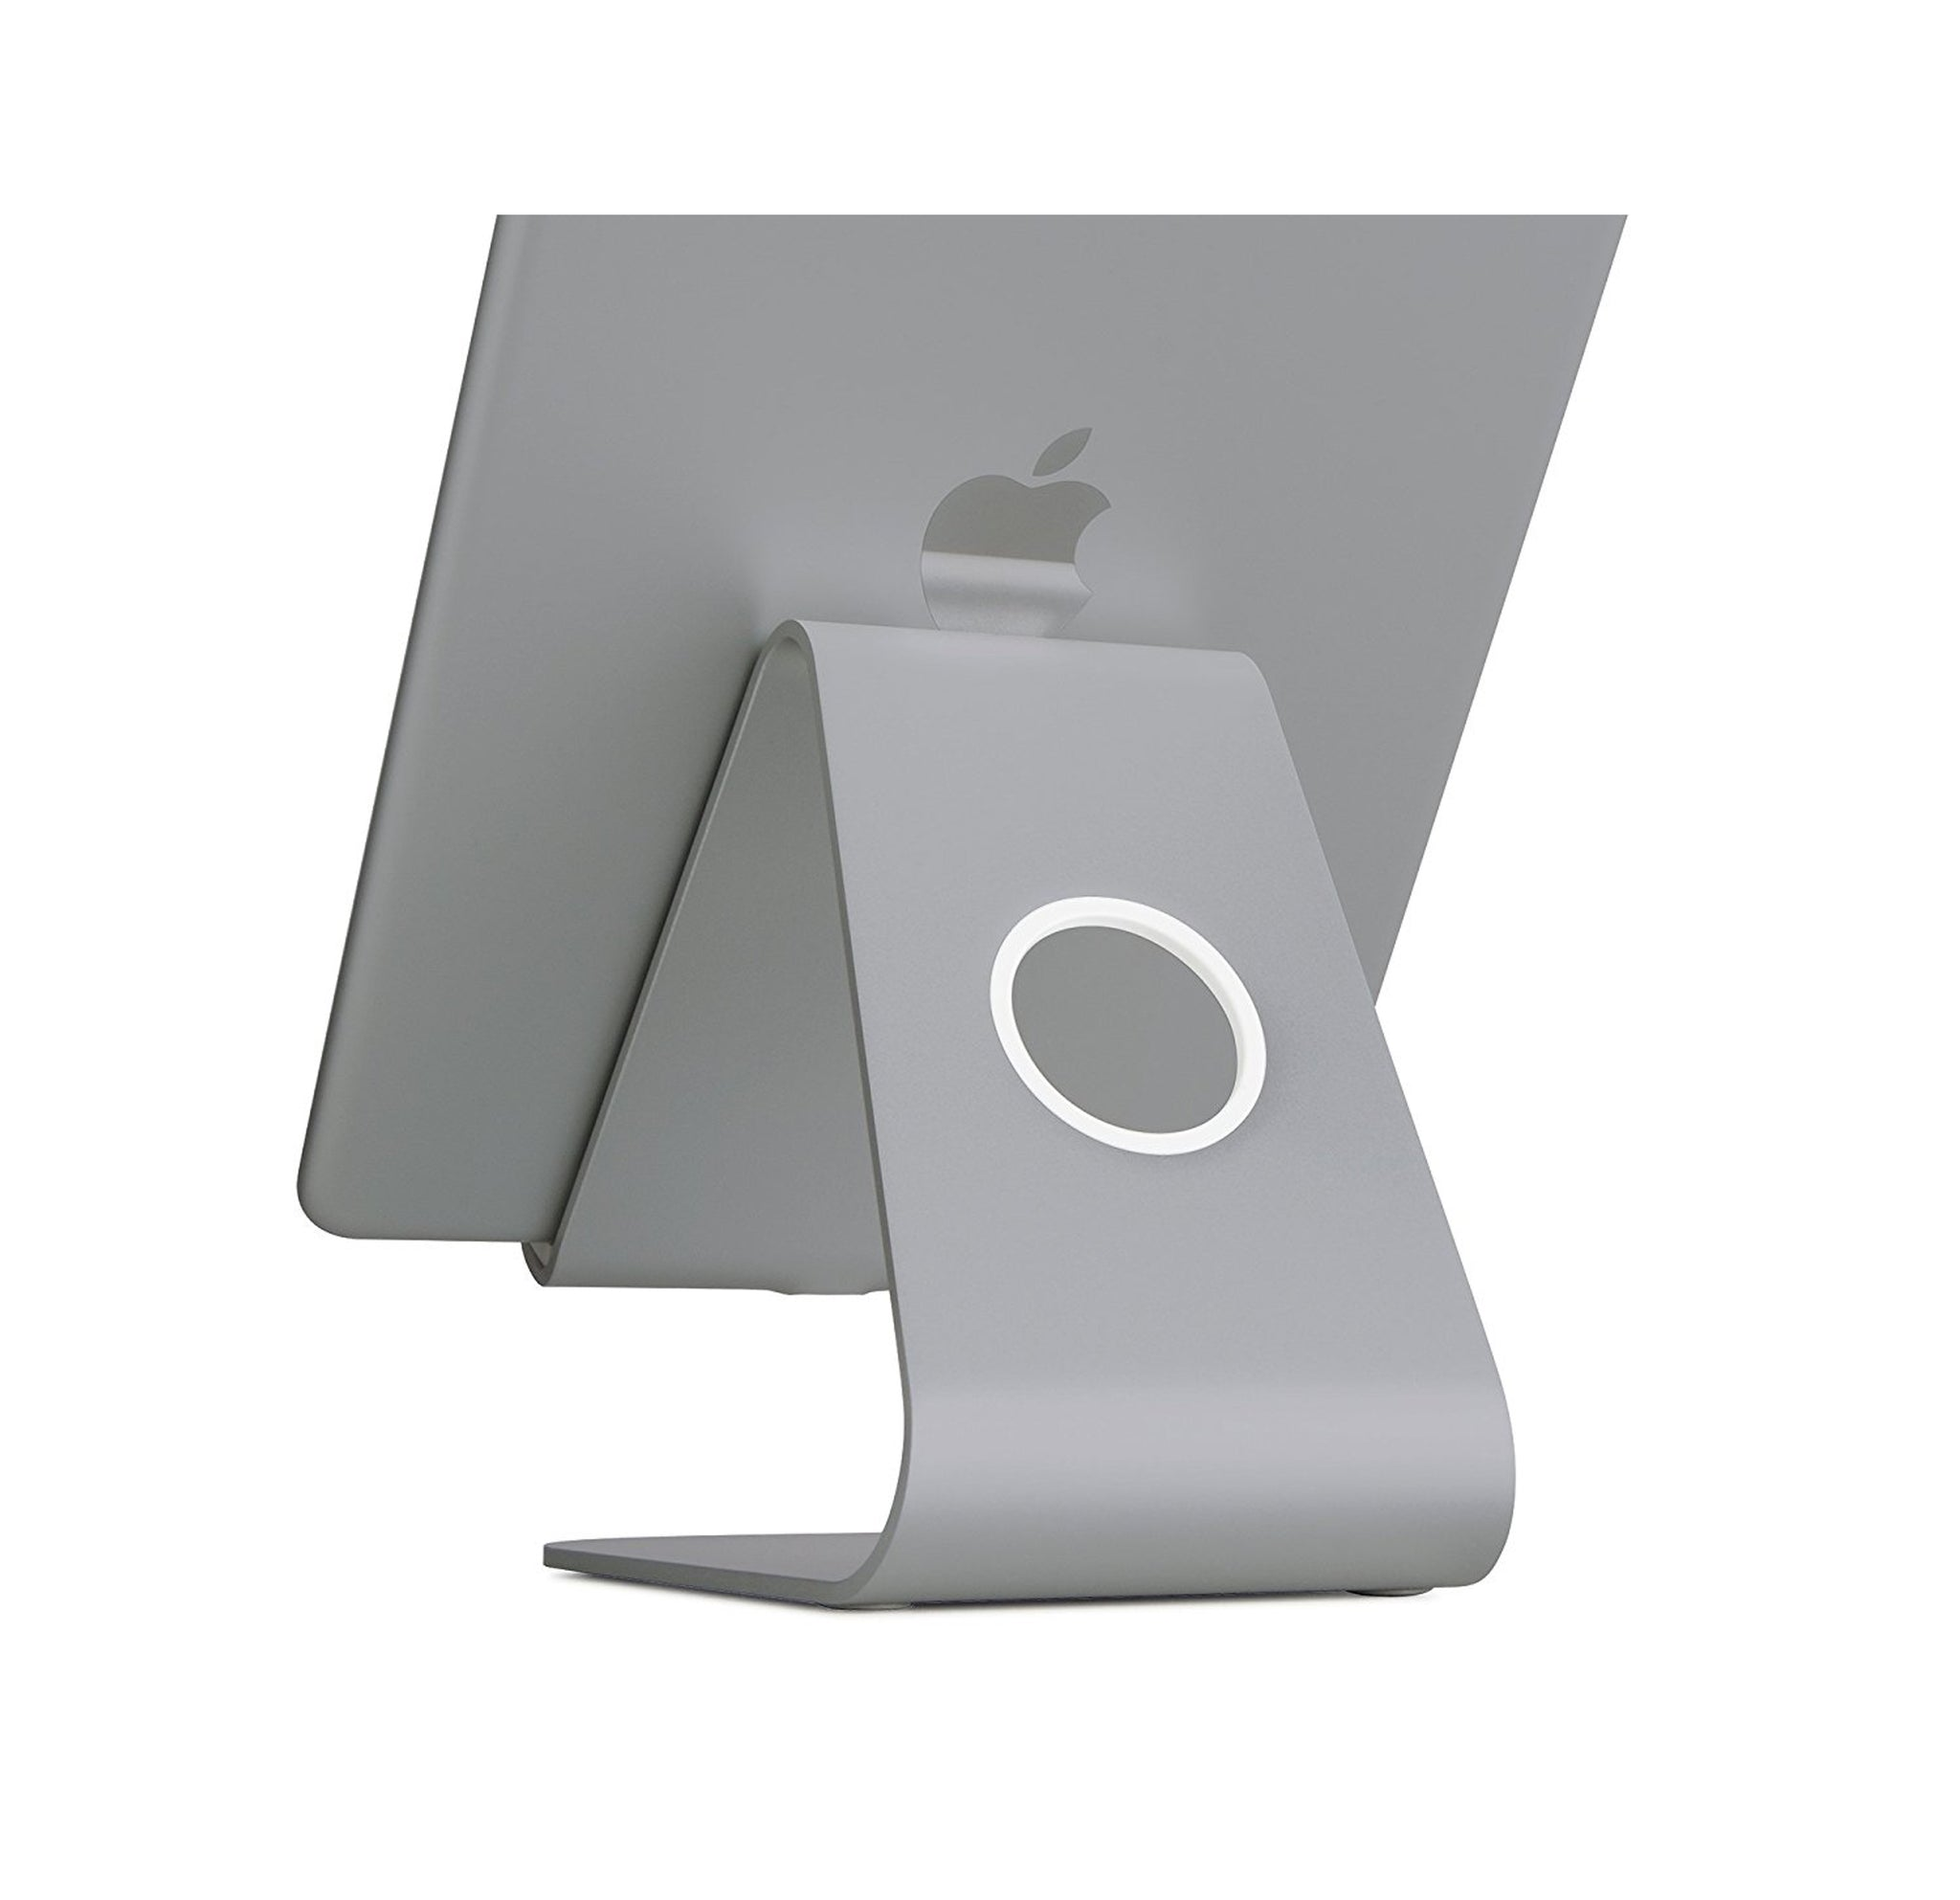 Rain Design mStand for iPads